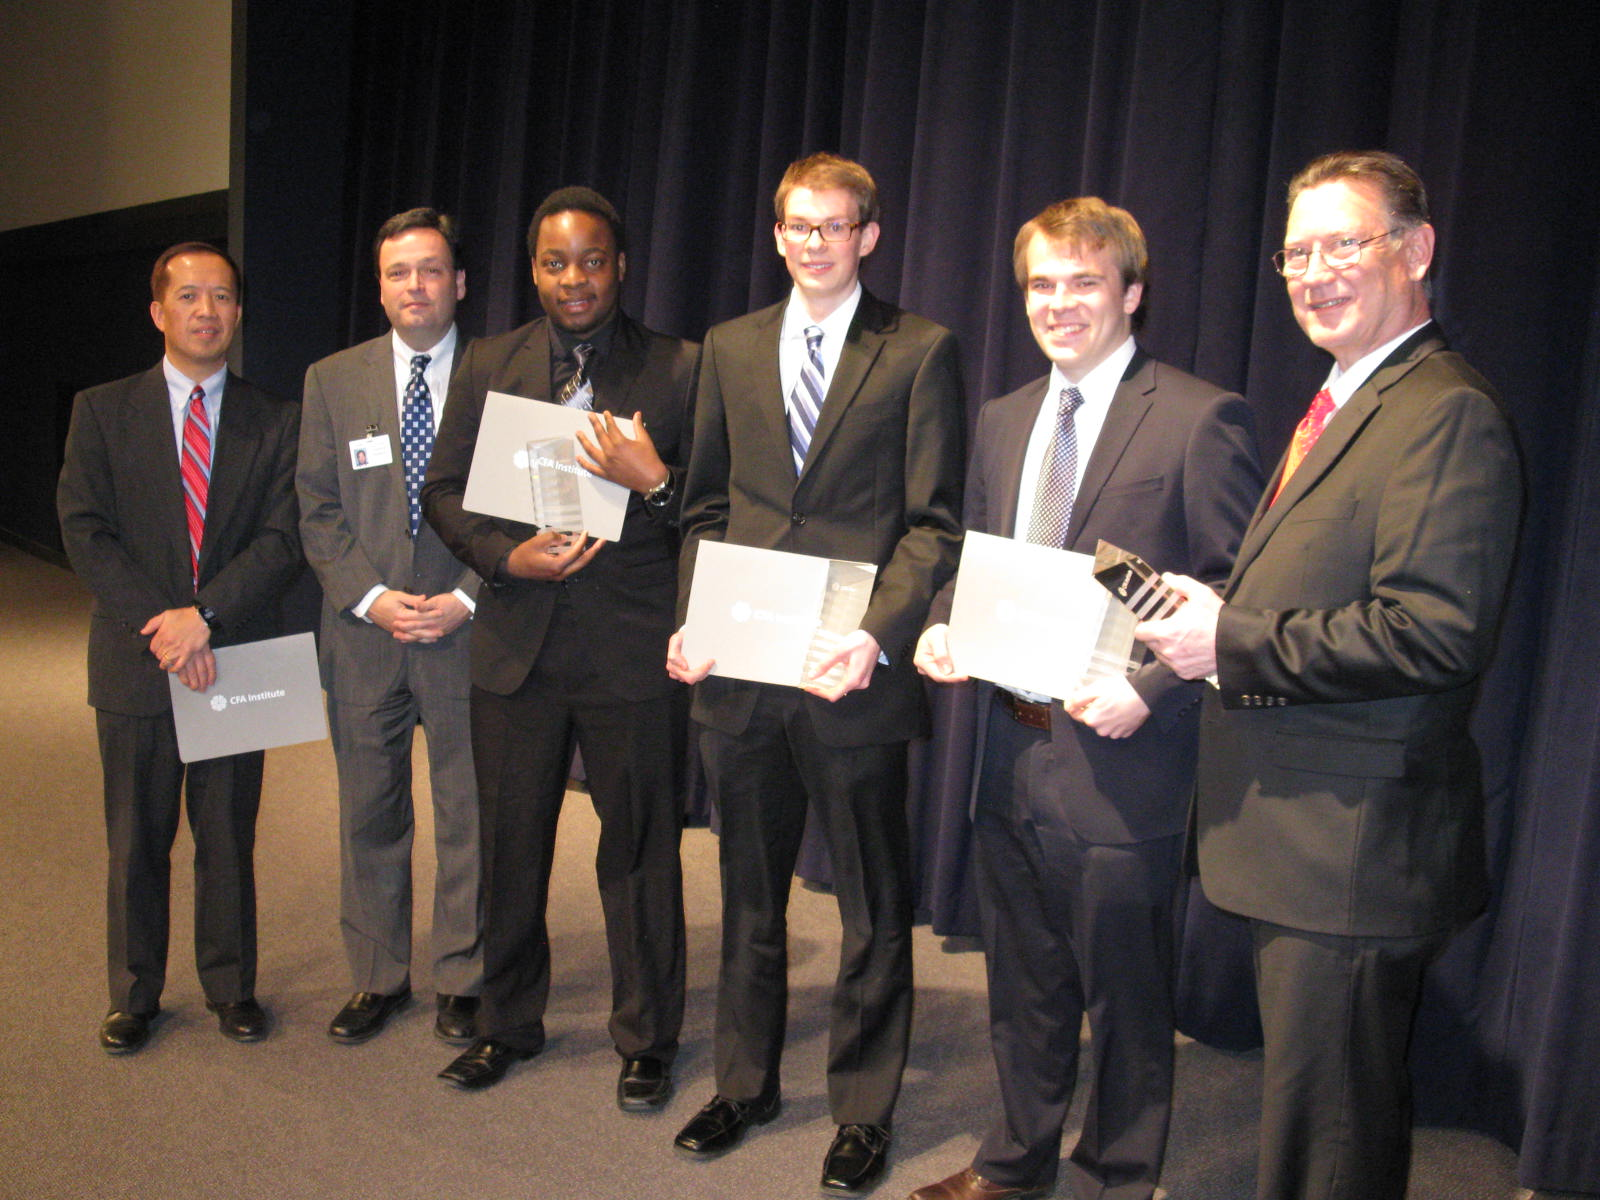 Analysts David Shoko, Lasse Fuss, & Sam Lohmeyer pose with Faculty Advisor Chuck Boughton